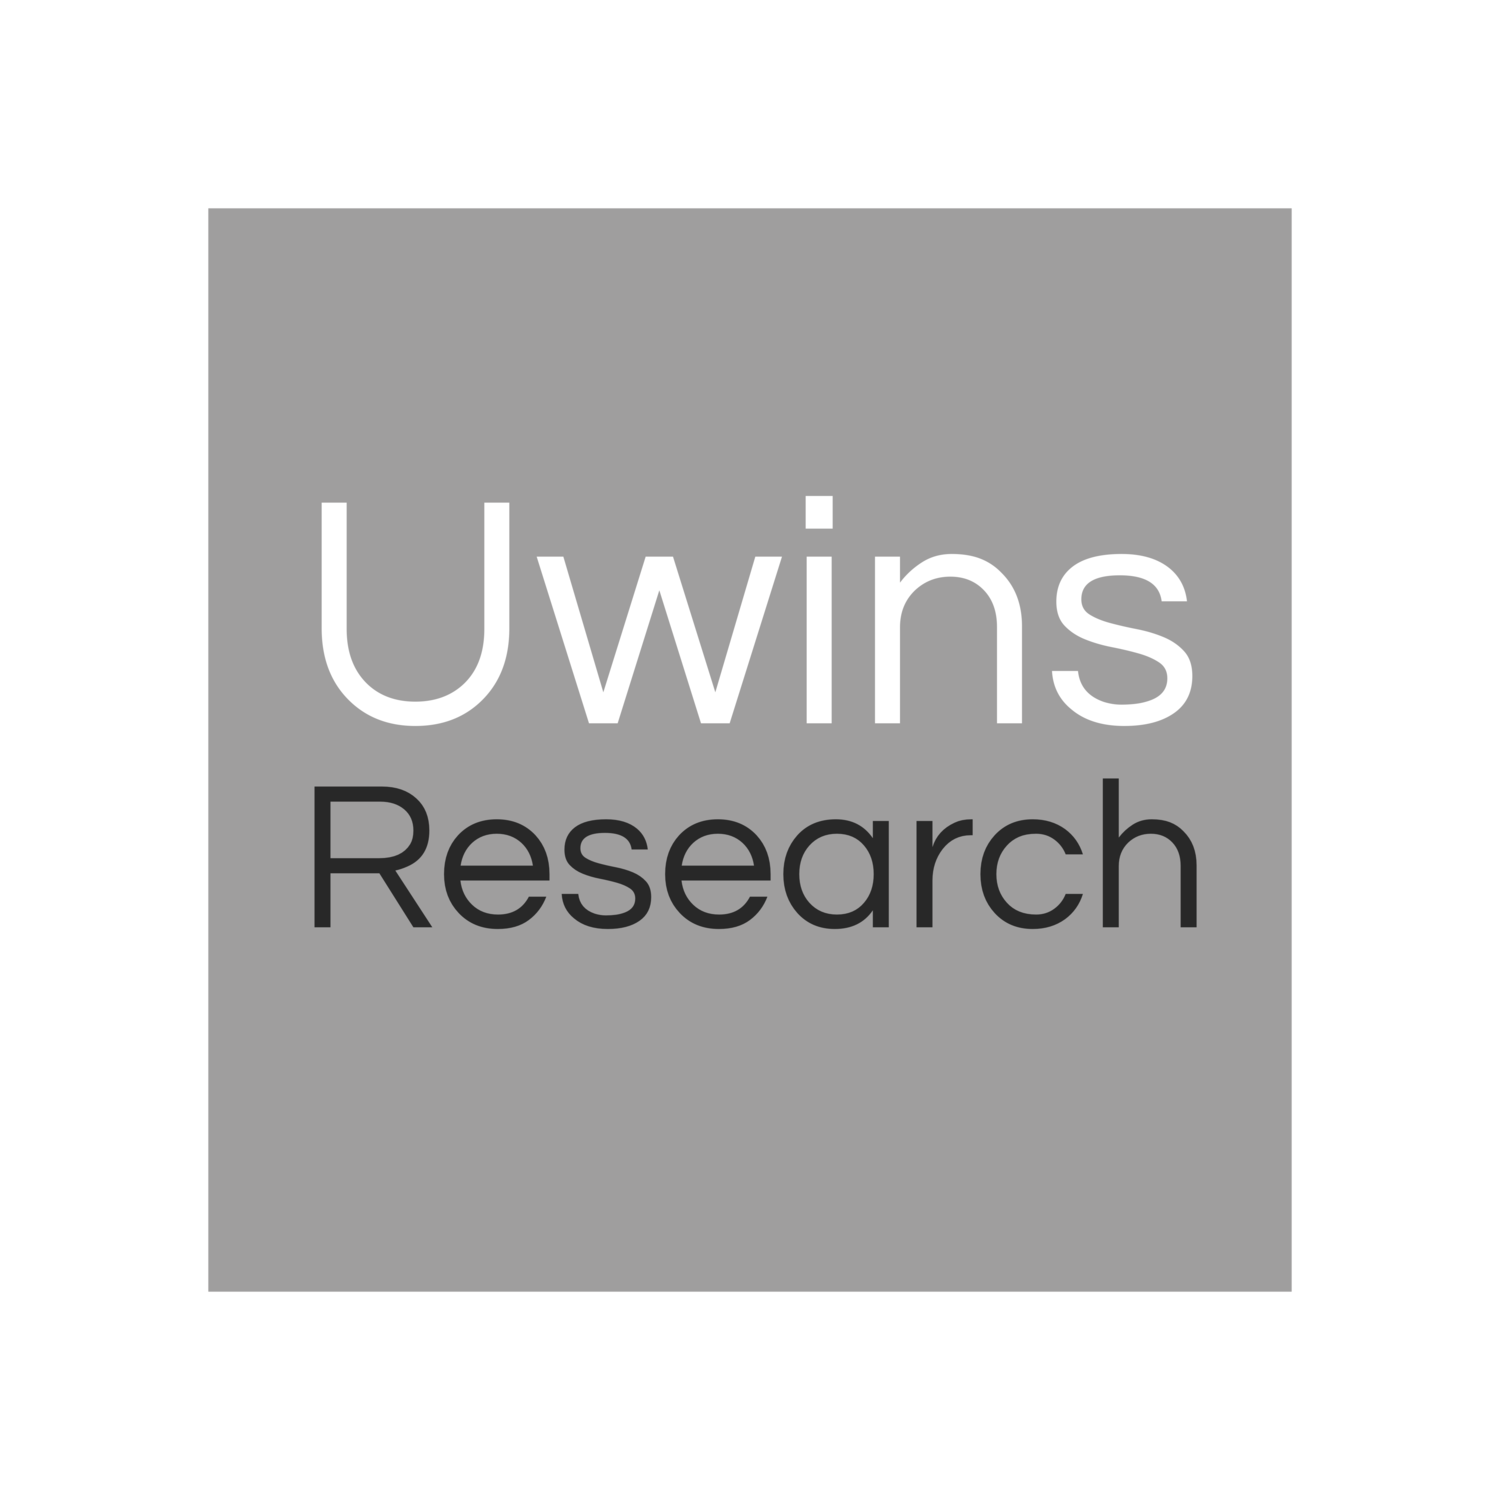 Uwins Research